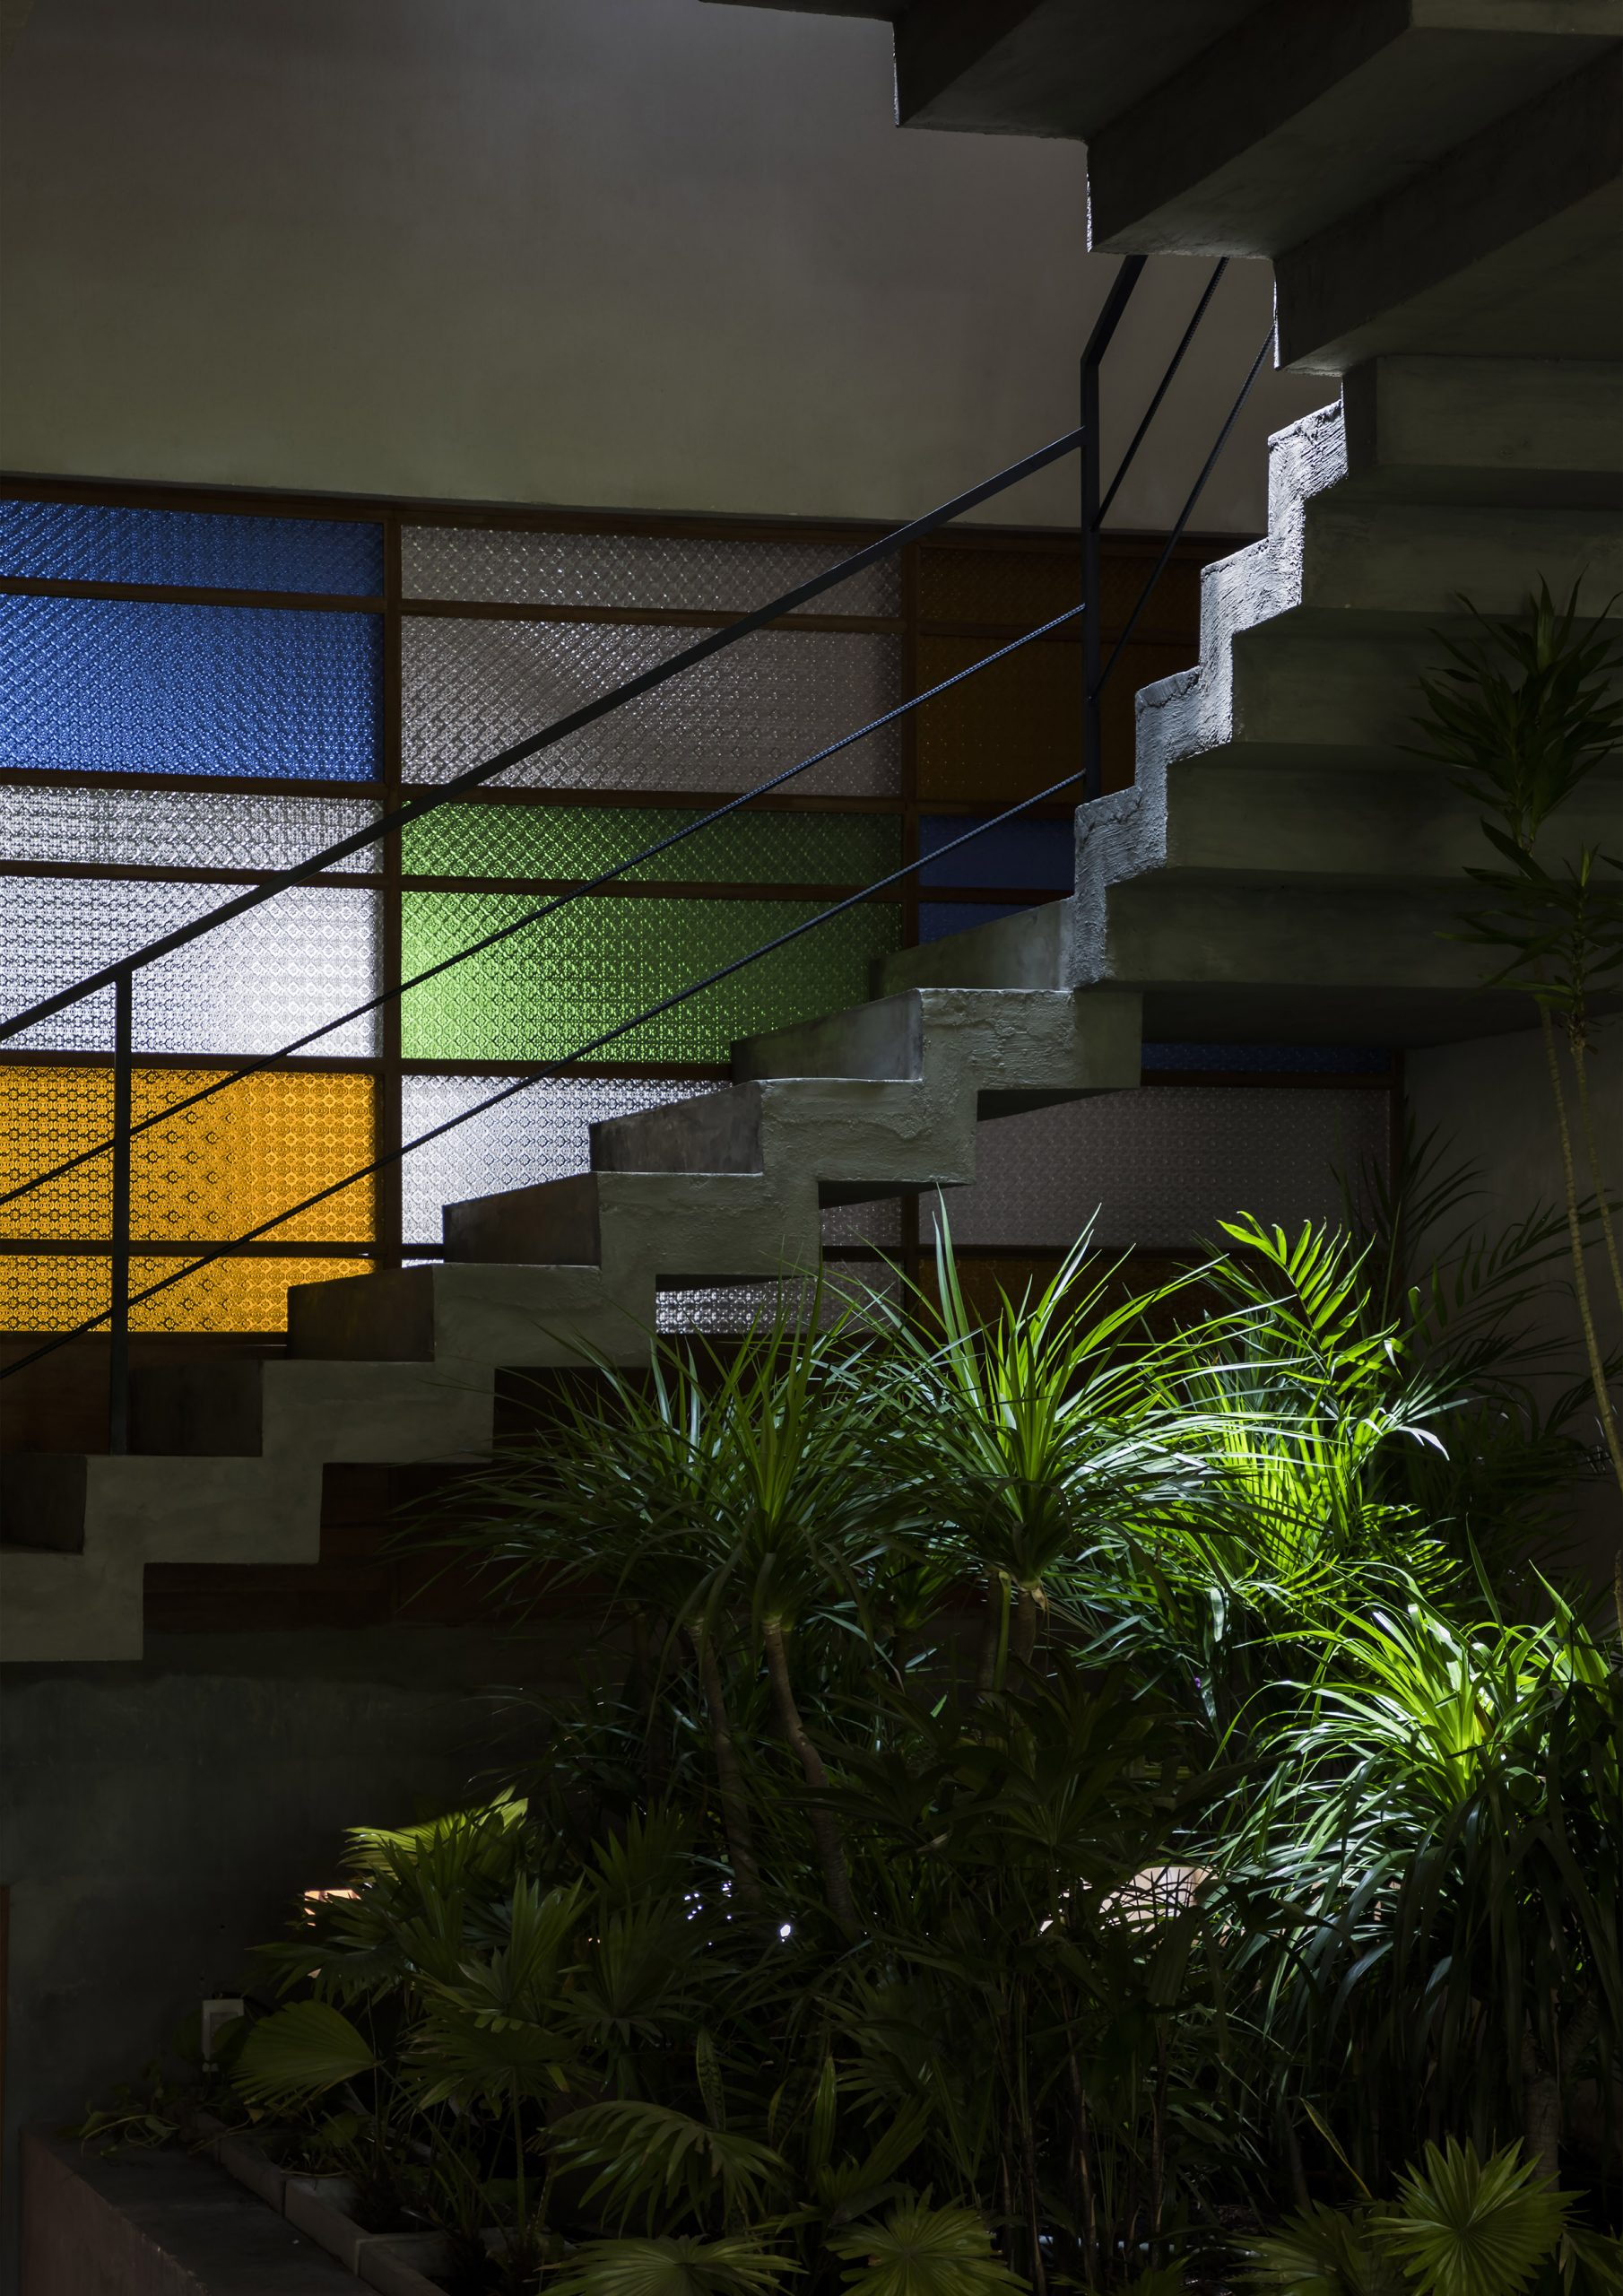 MM house 2.0 | MM++ architects